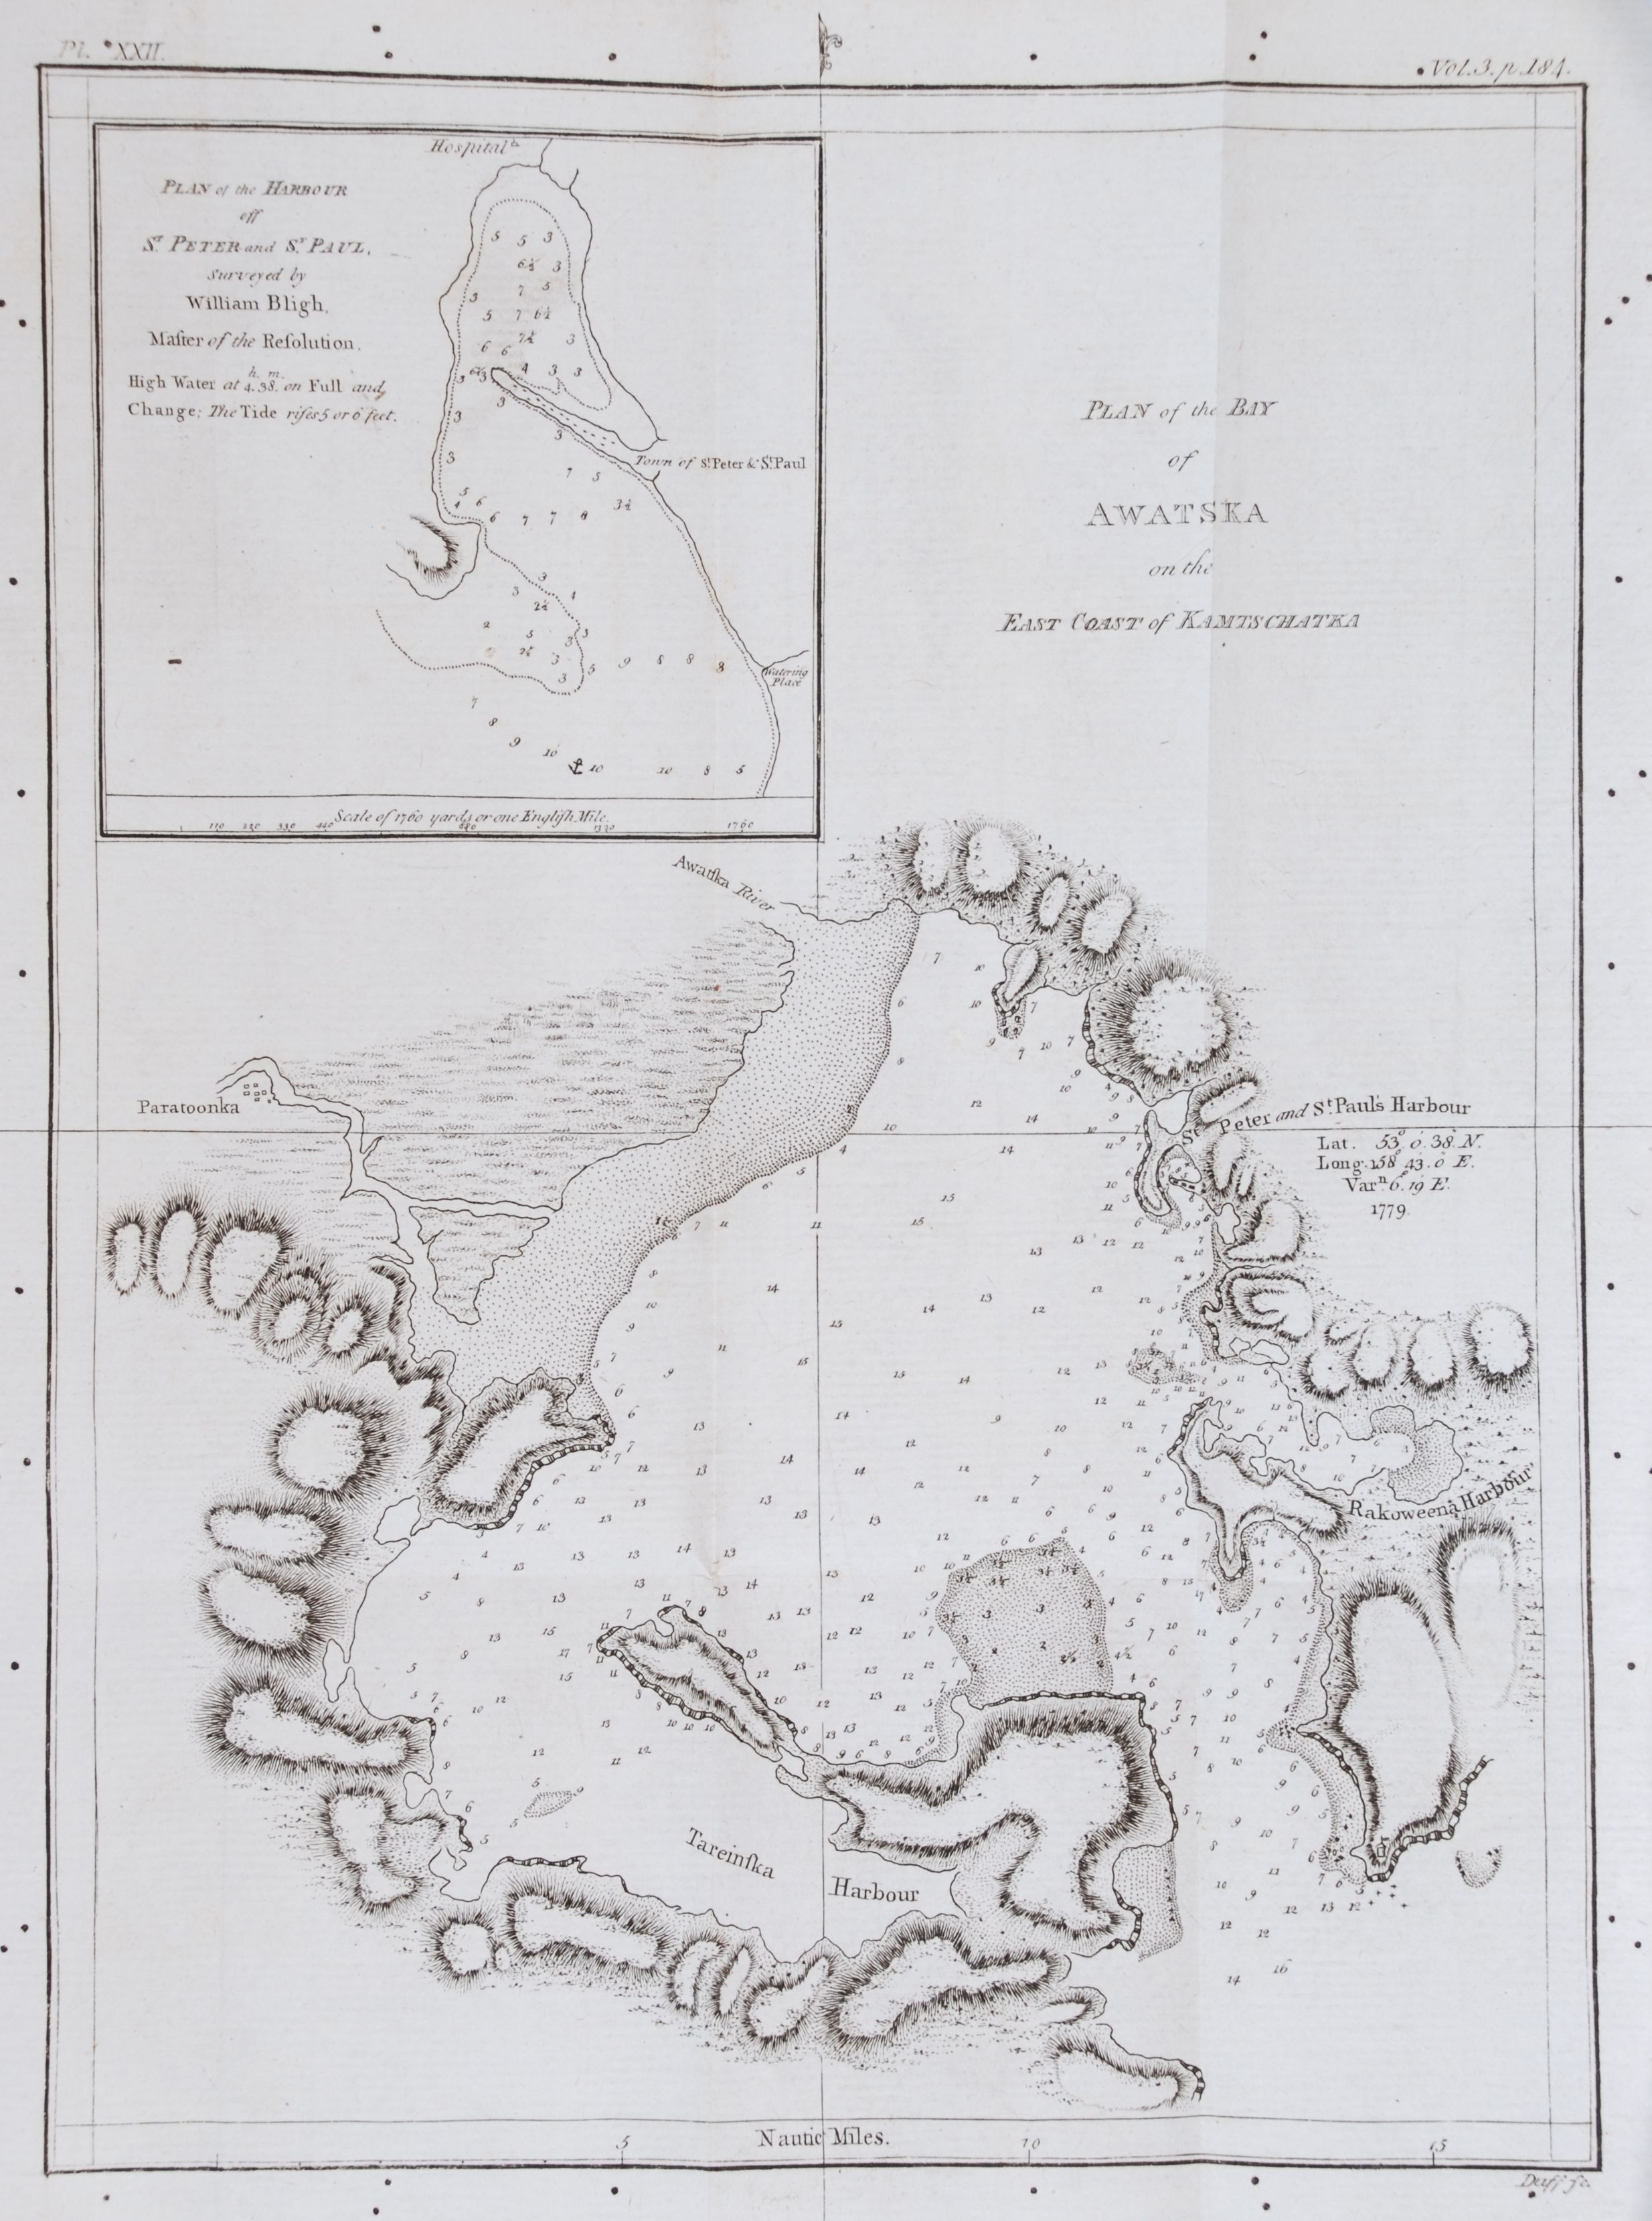 James Cook. A Voyage to the Pacific Ocean: undertaken, by the command of His Majesty, for making discoveries in the northern hemisphere. To determine the position and extent of the west side of North America; its distance from Asia; and the practicability of a northern passage to Europe... Vol. 3.  3rd edition. Dublin: Printed for H. Chamberlaine, W. Watson, . . . Herey and Mckenzie, 1784.